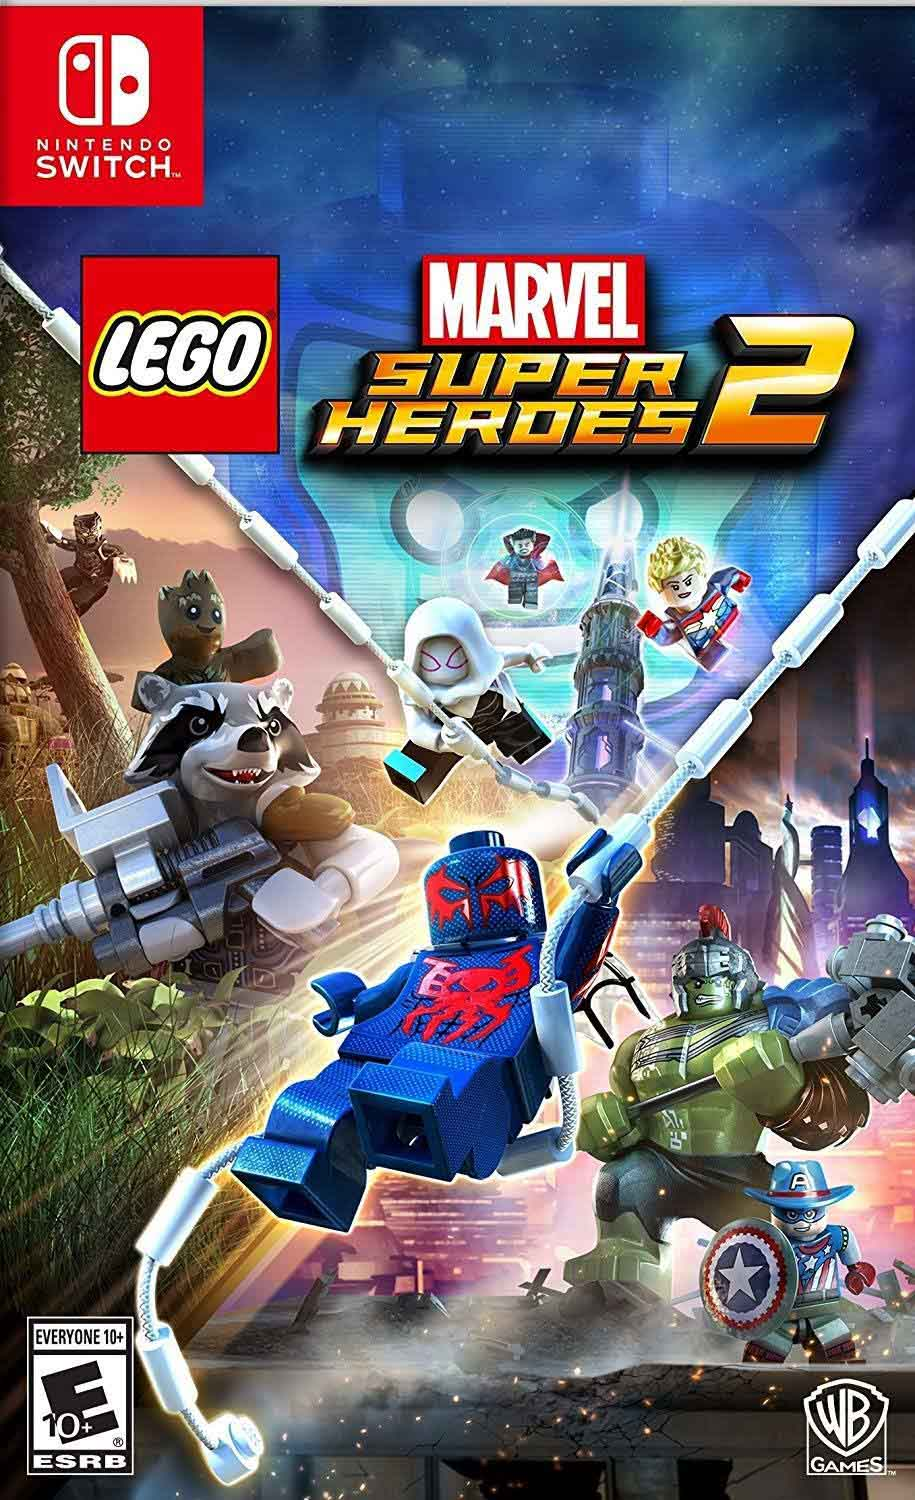 Cover of Lego Marvel Super Heroes 2